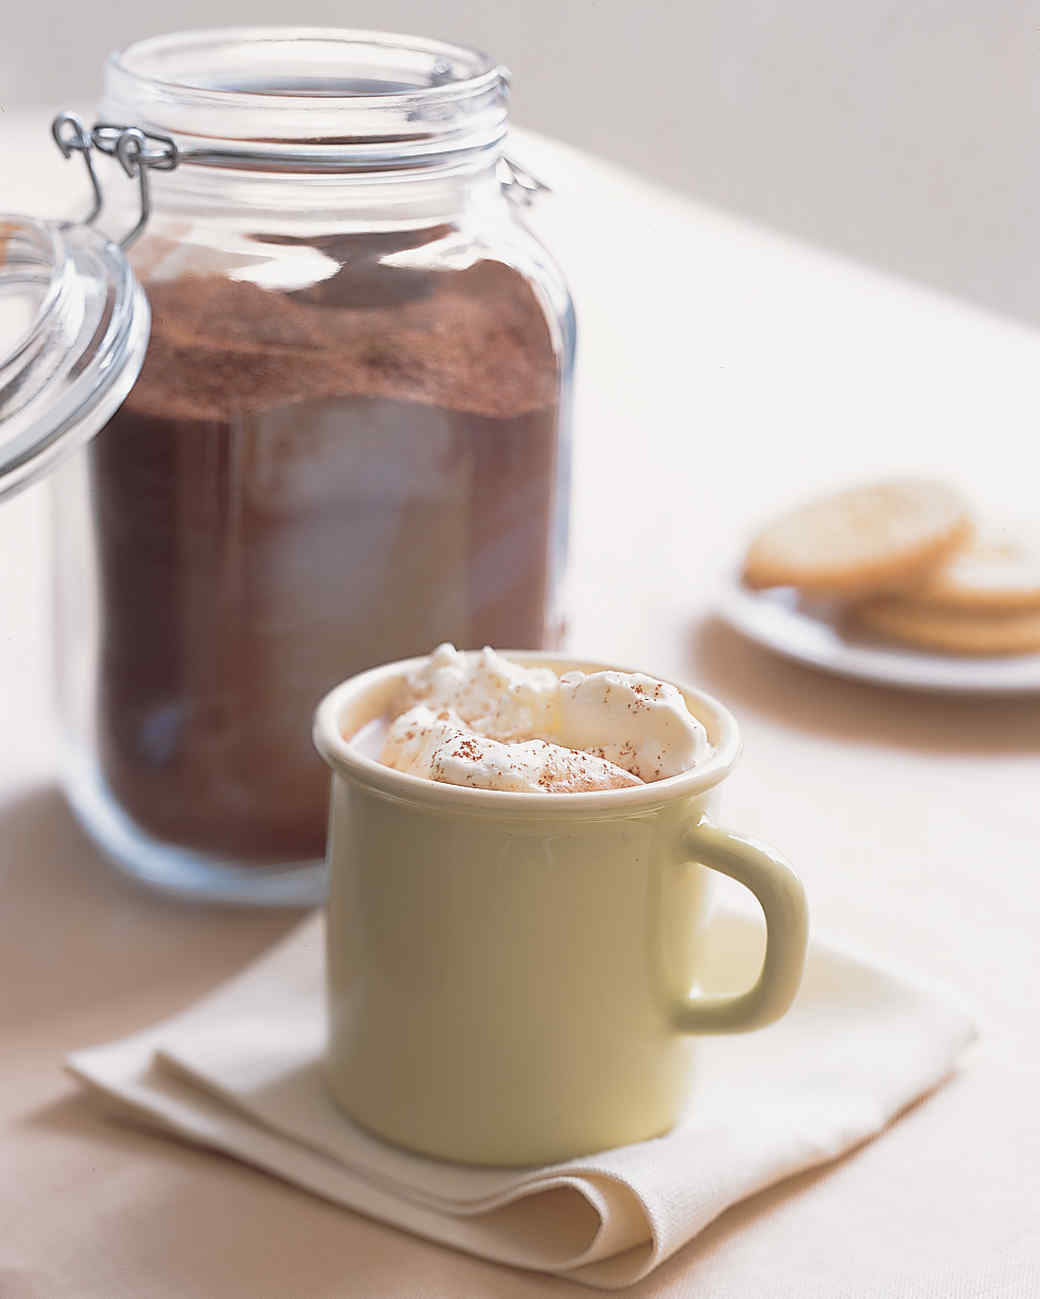 What To Add To Cocoa Powder To Make Hot Chocolate